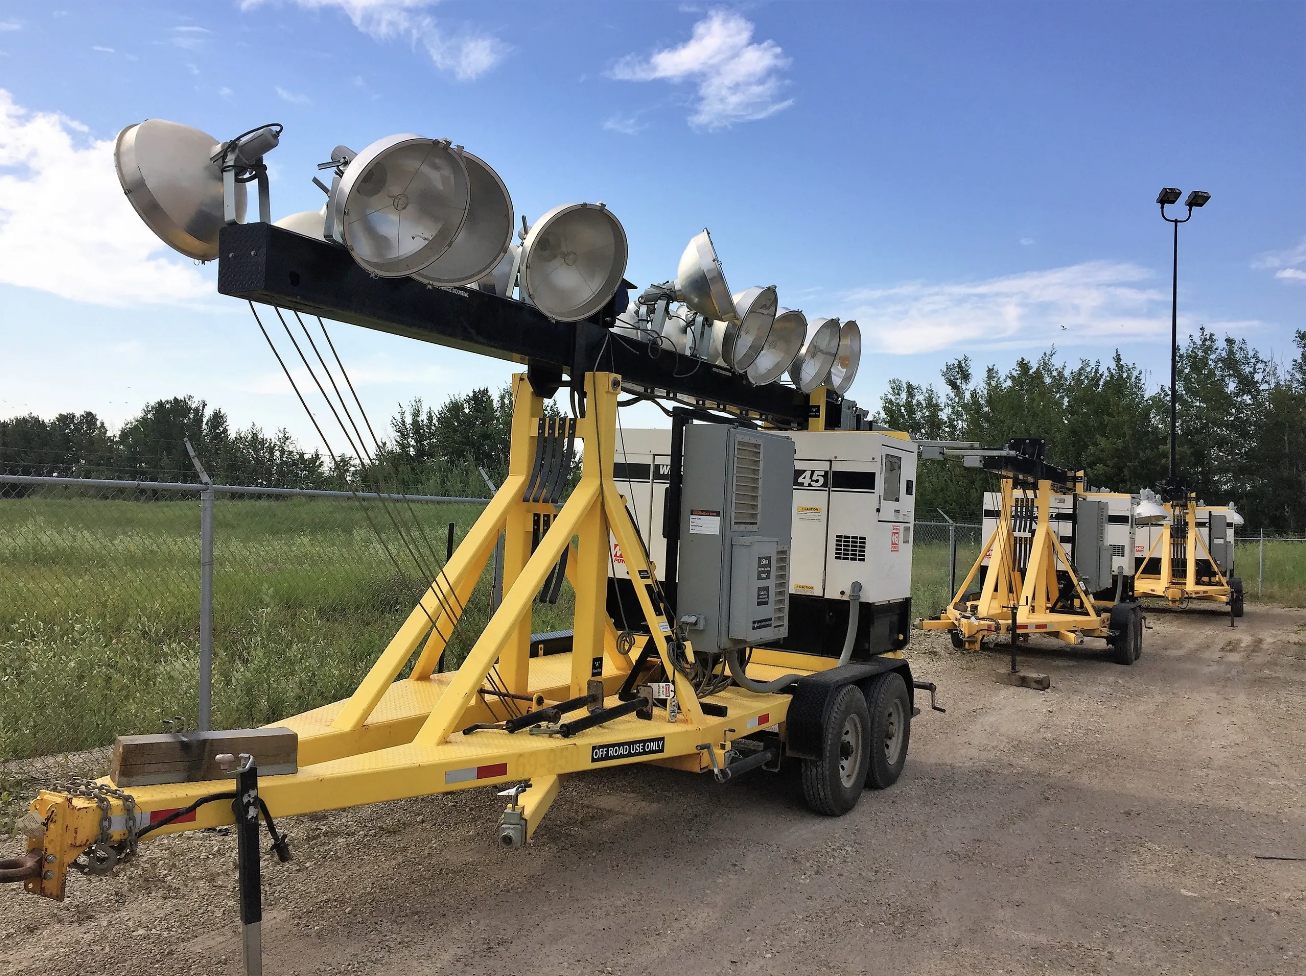 Light towers prior to being set up